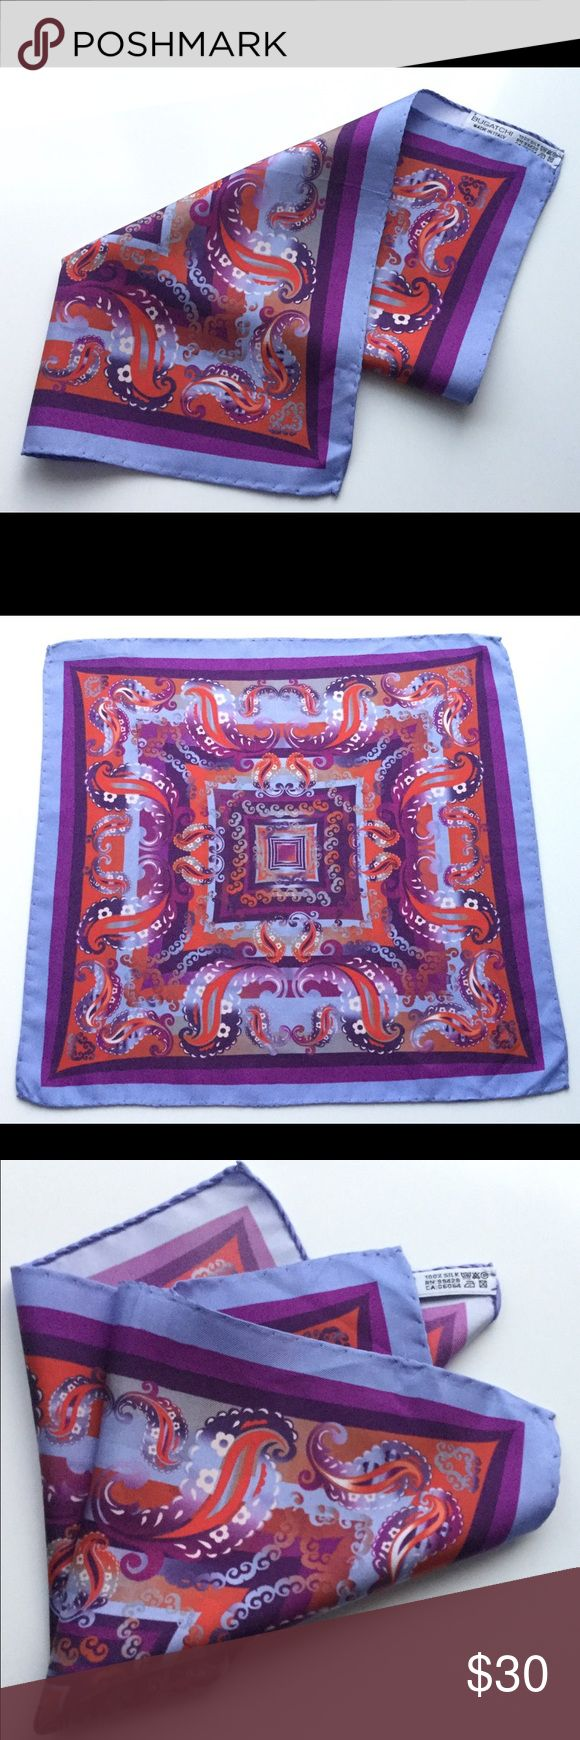 Stylish men's Handkerchief Bucatchi 🇮🇹 100% silk. Made in Italy Bugatchi Accessories Pocket Squares